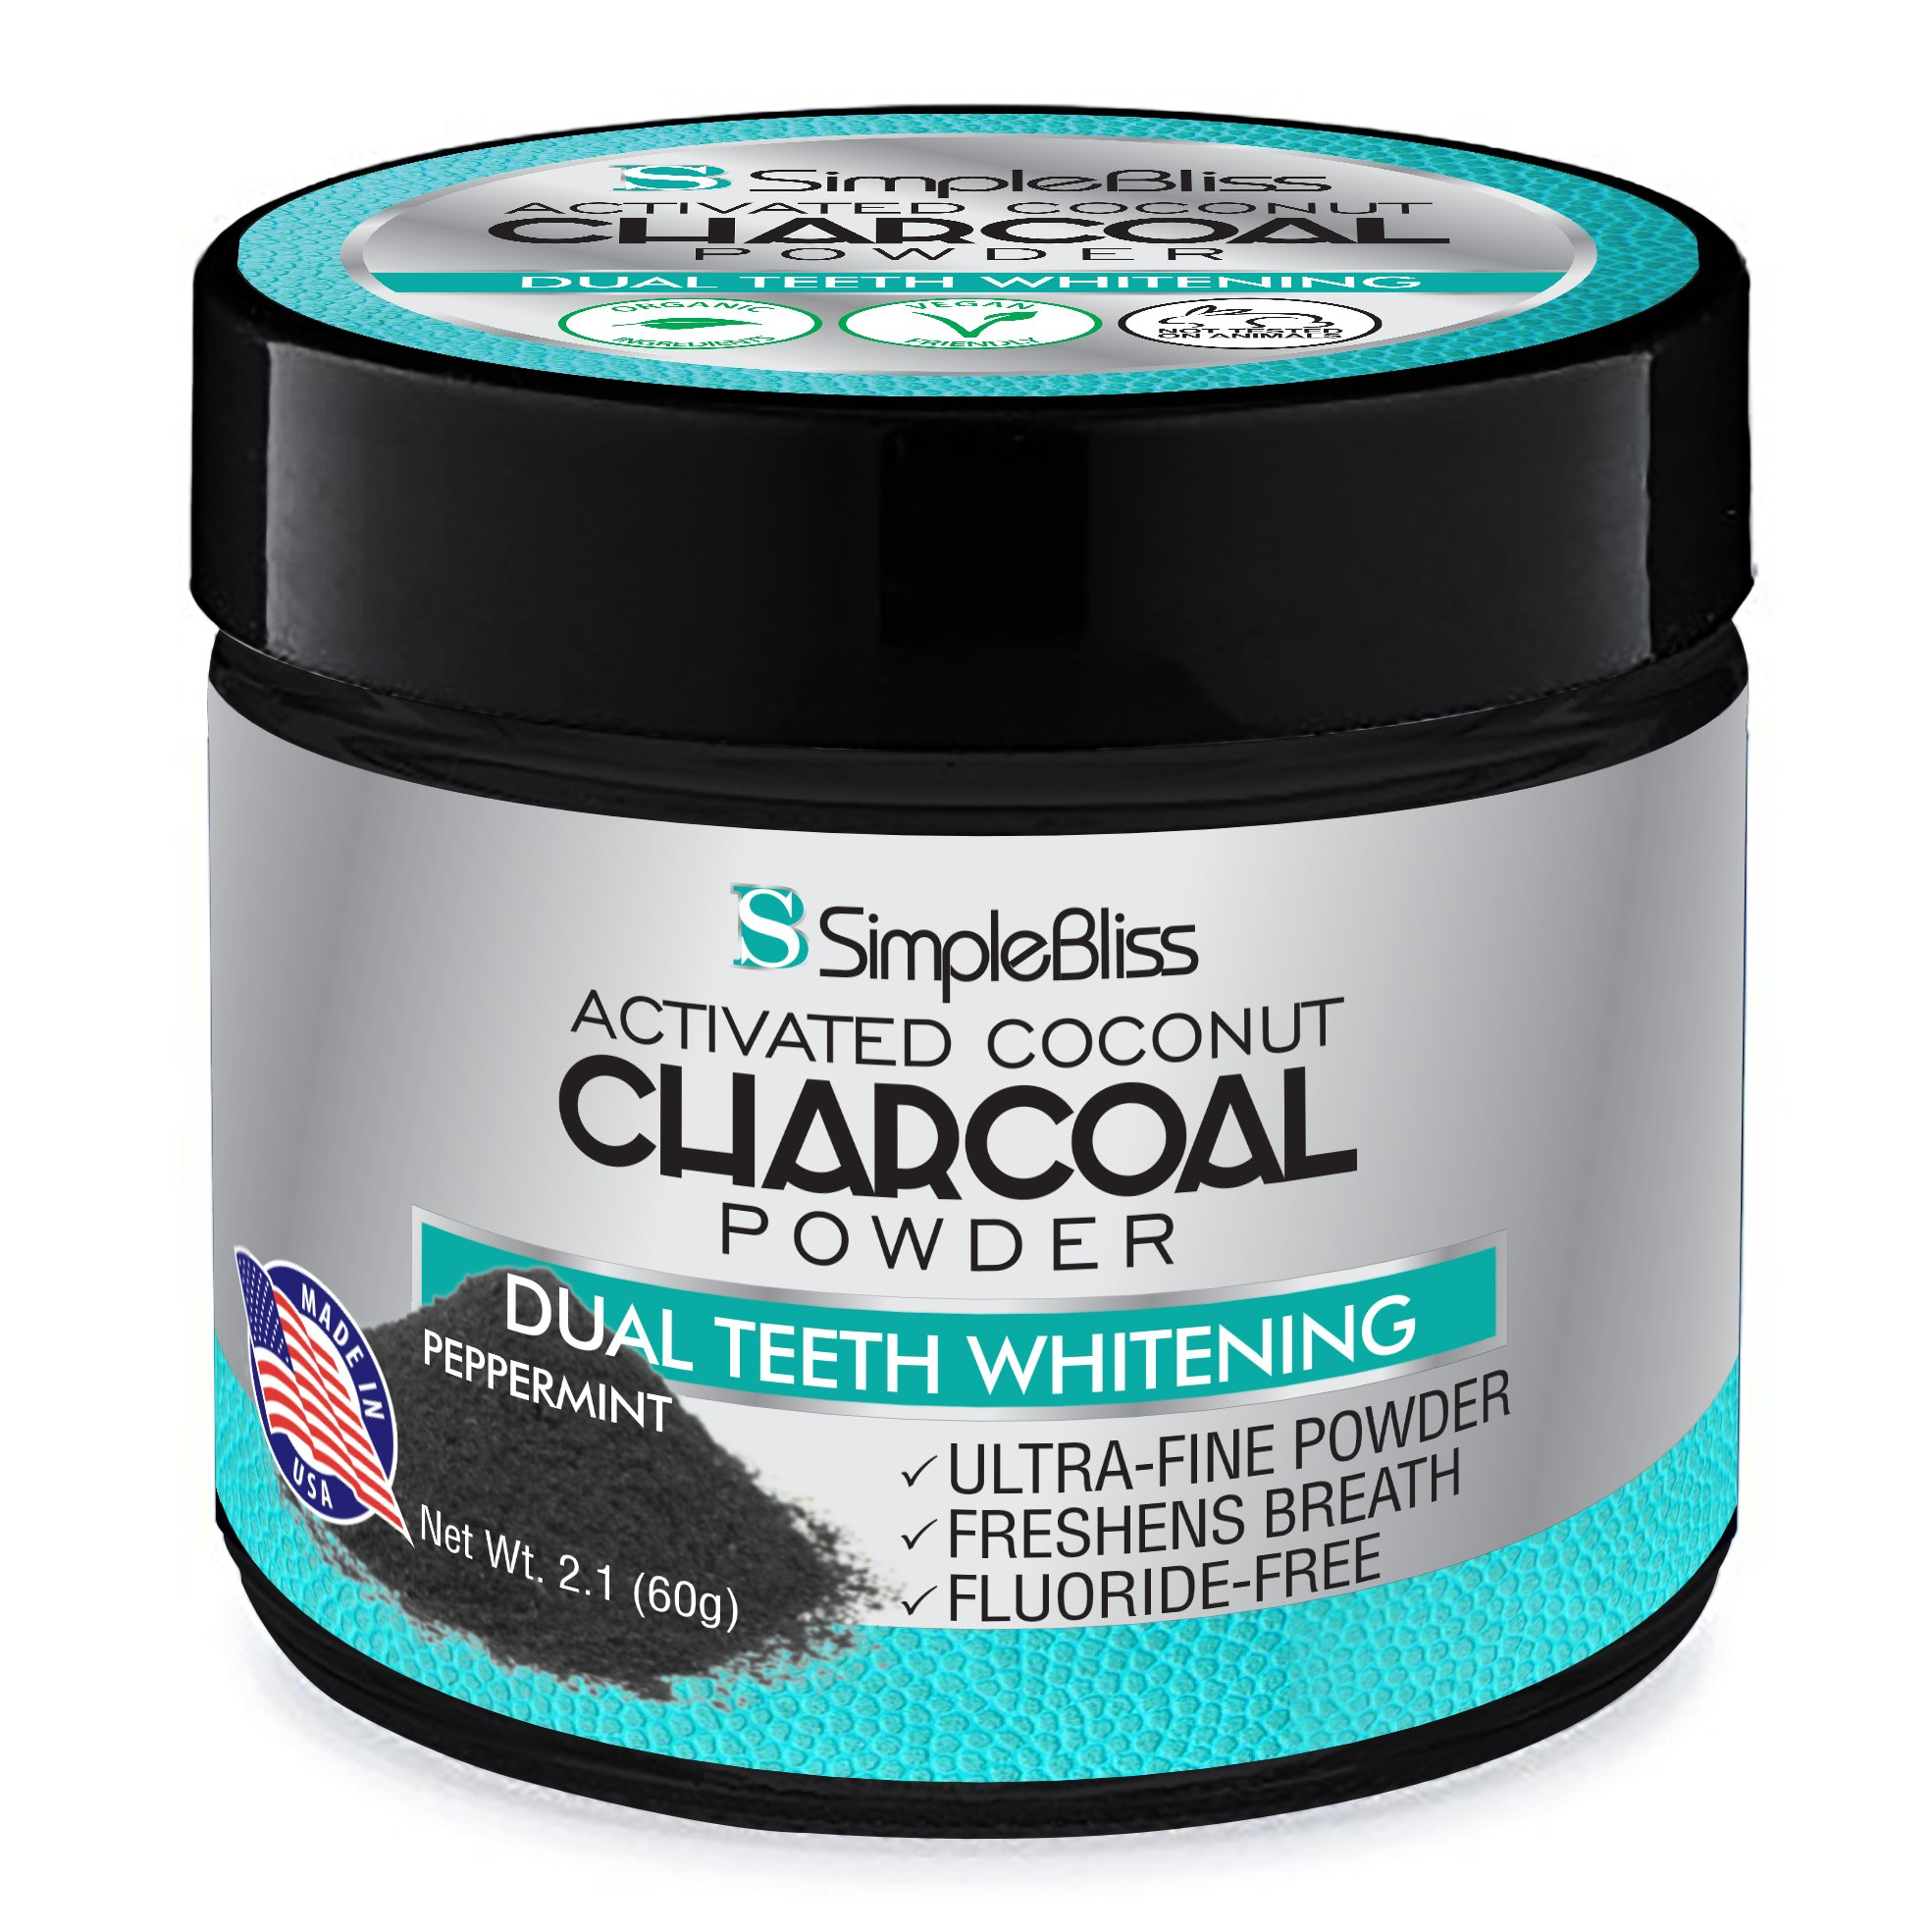 Activated Charcoal Teeth Whitening Powder Toothpaste 60g - All Natural, Non Abrasive, Safe & Effective Organic Coconut Tooth Whitener - Removes Stains, Fluoride Free, Made in USA - Peppermint